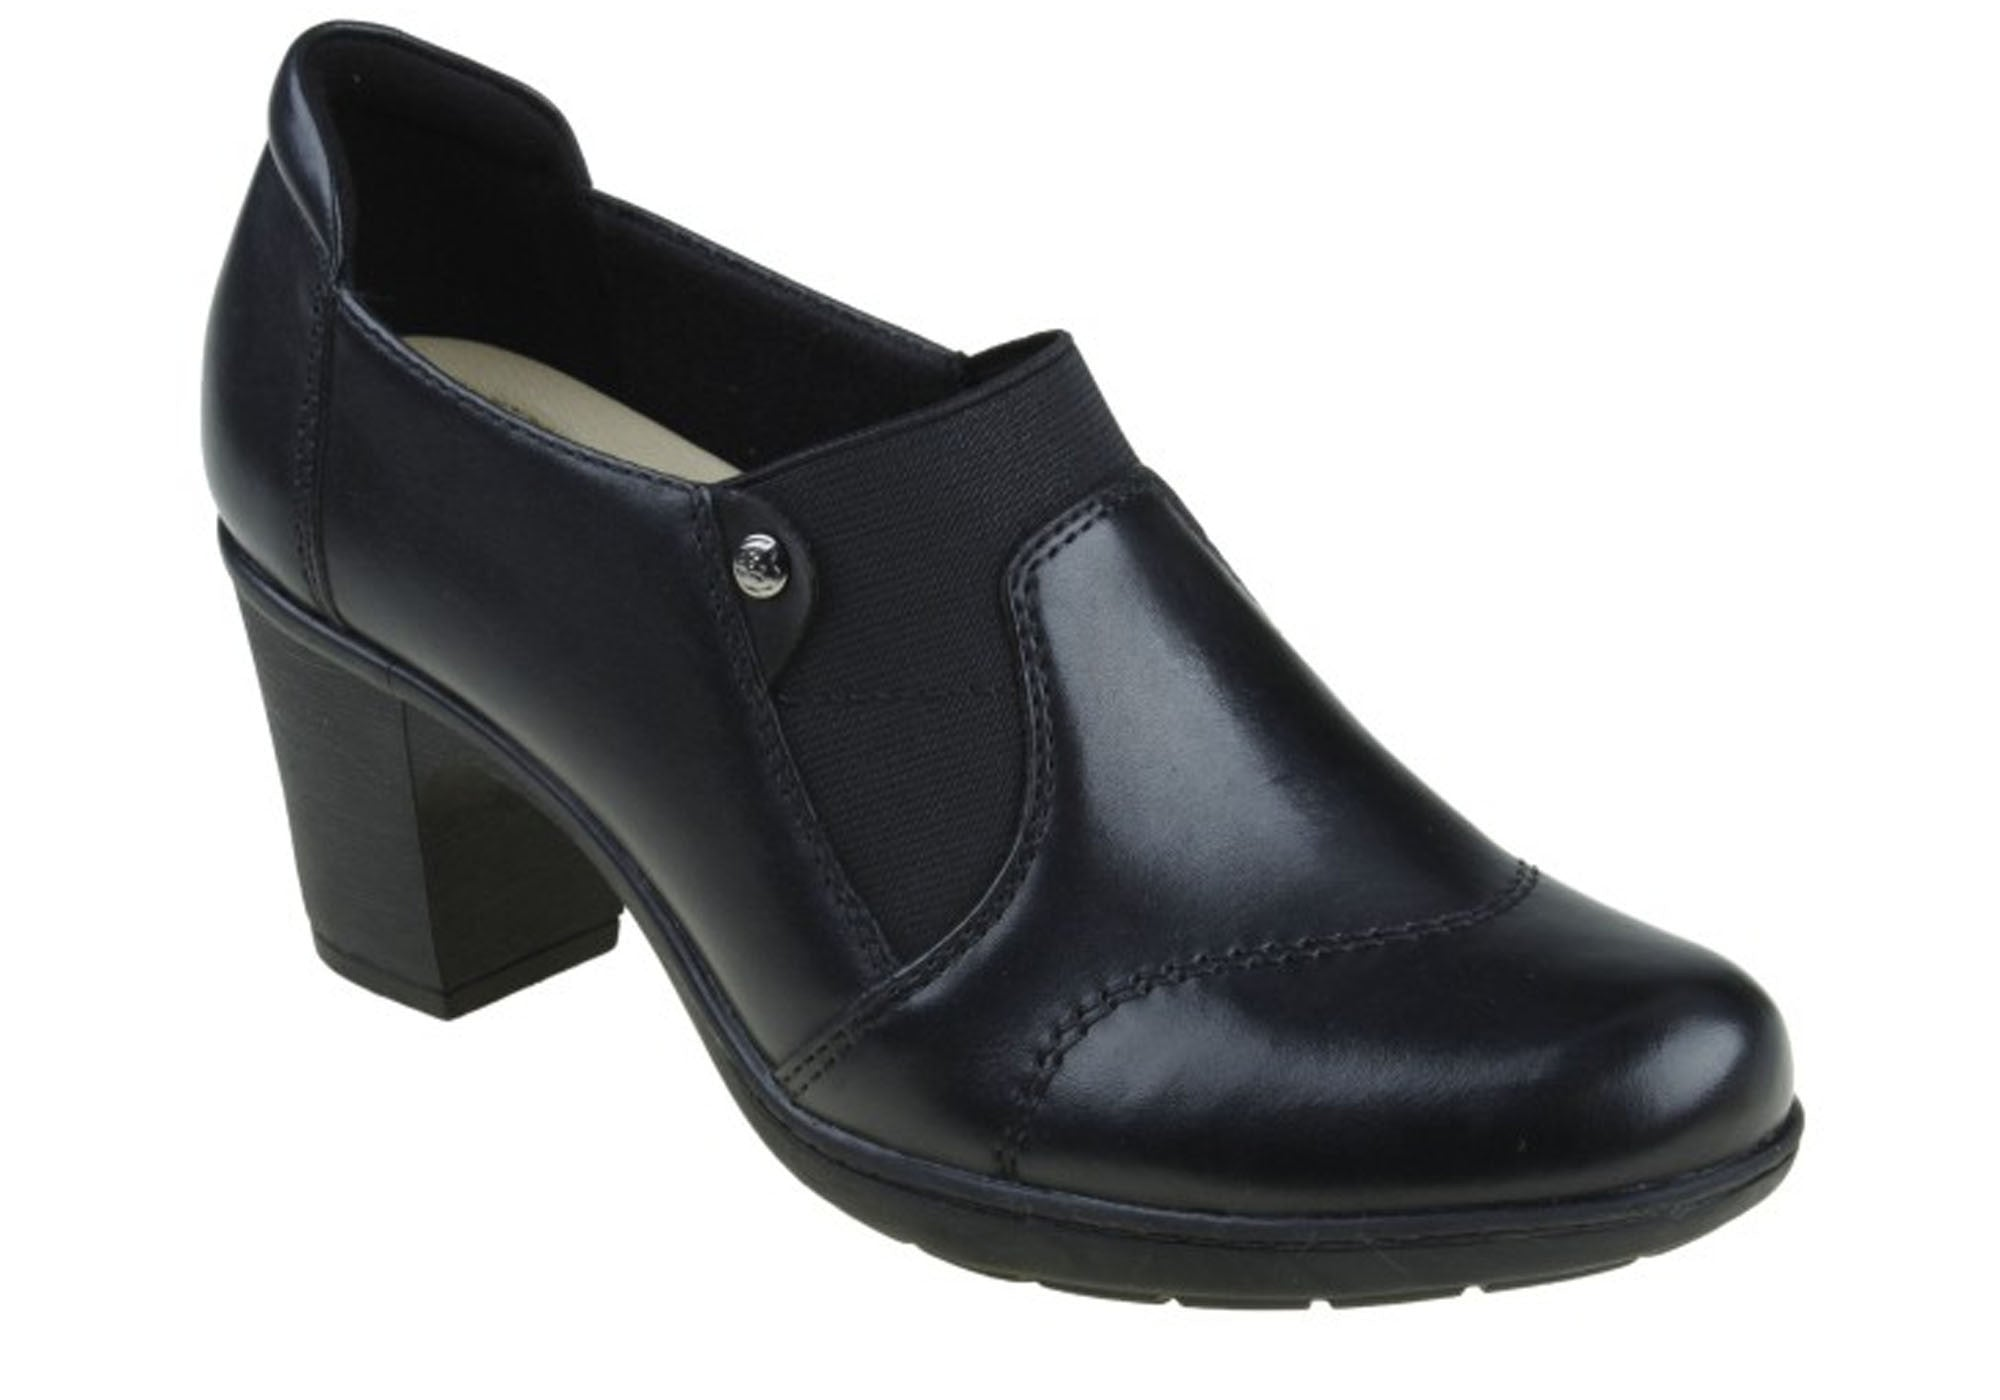 Planet Shoes Bea Womens Comfortable Shoes Cushioned With Arch Support | eBay